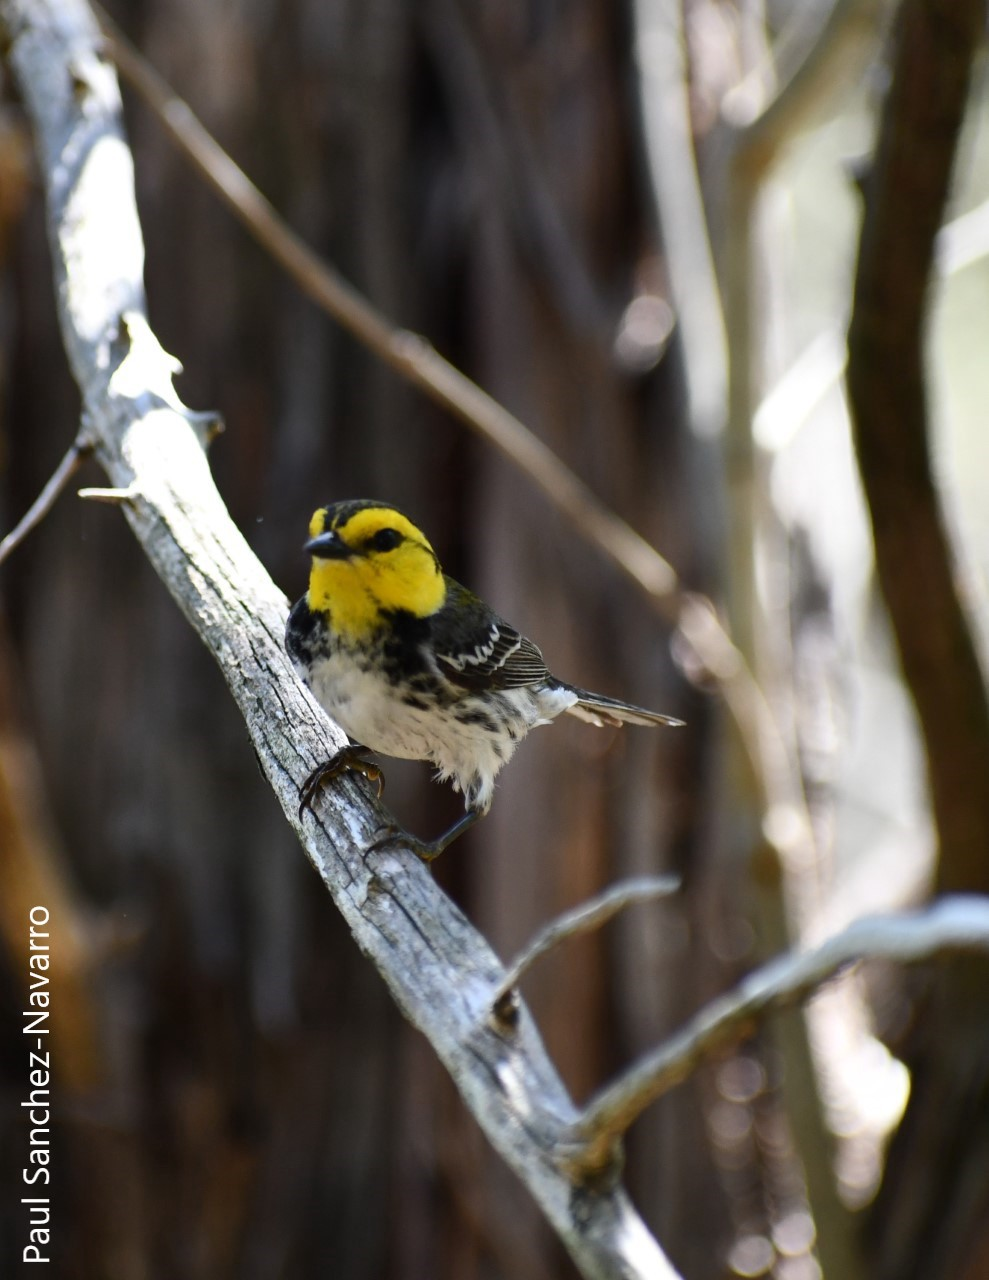 Golden-cheeked warbler survey in Texas